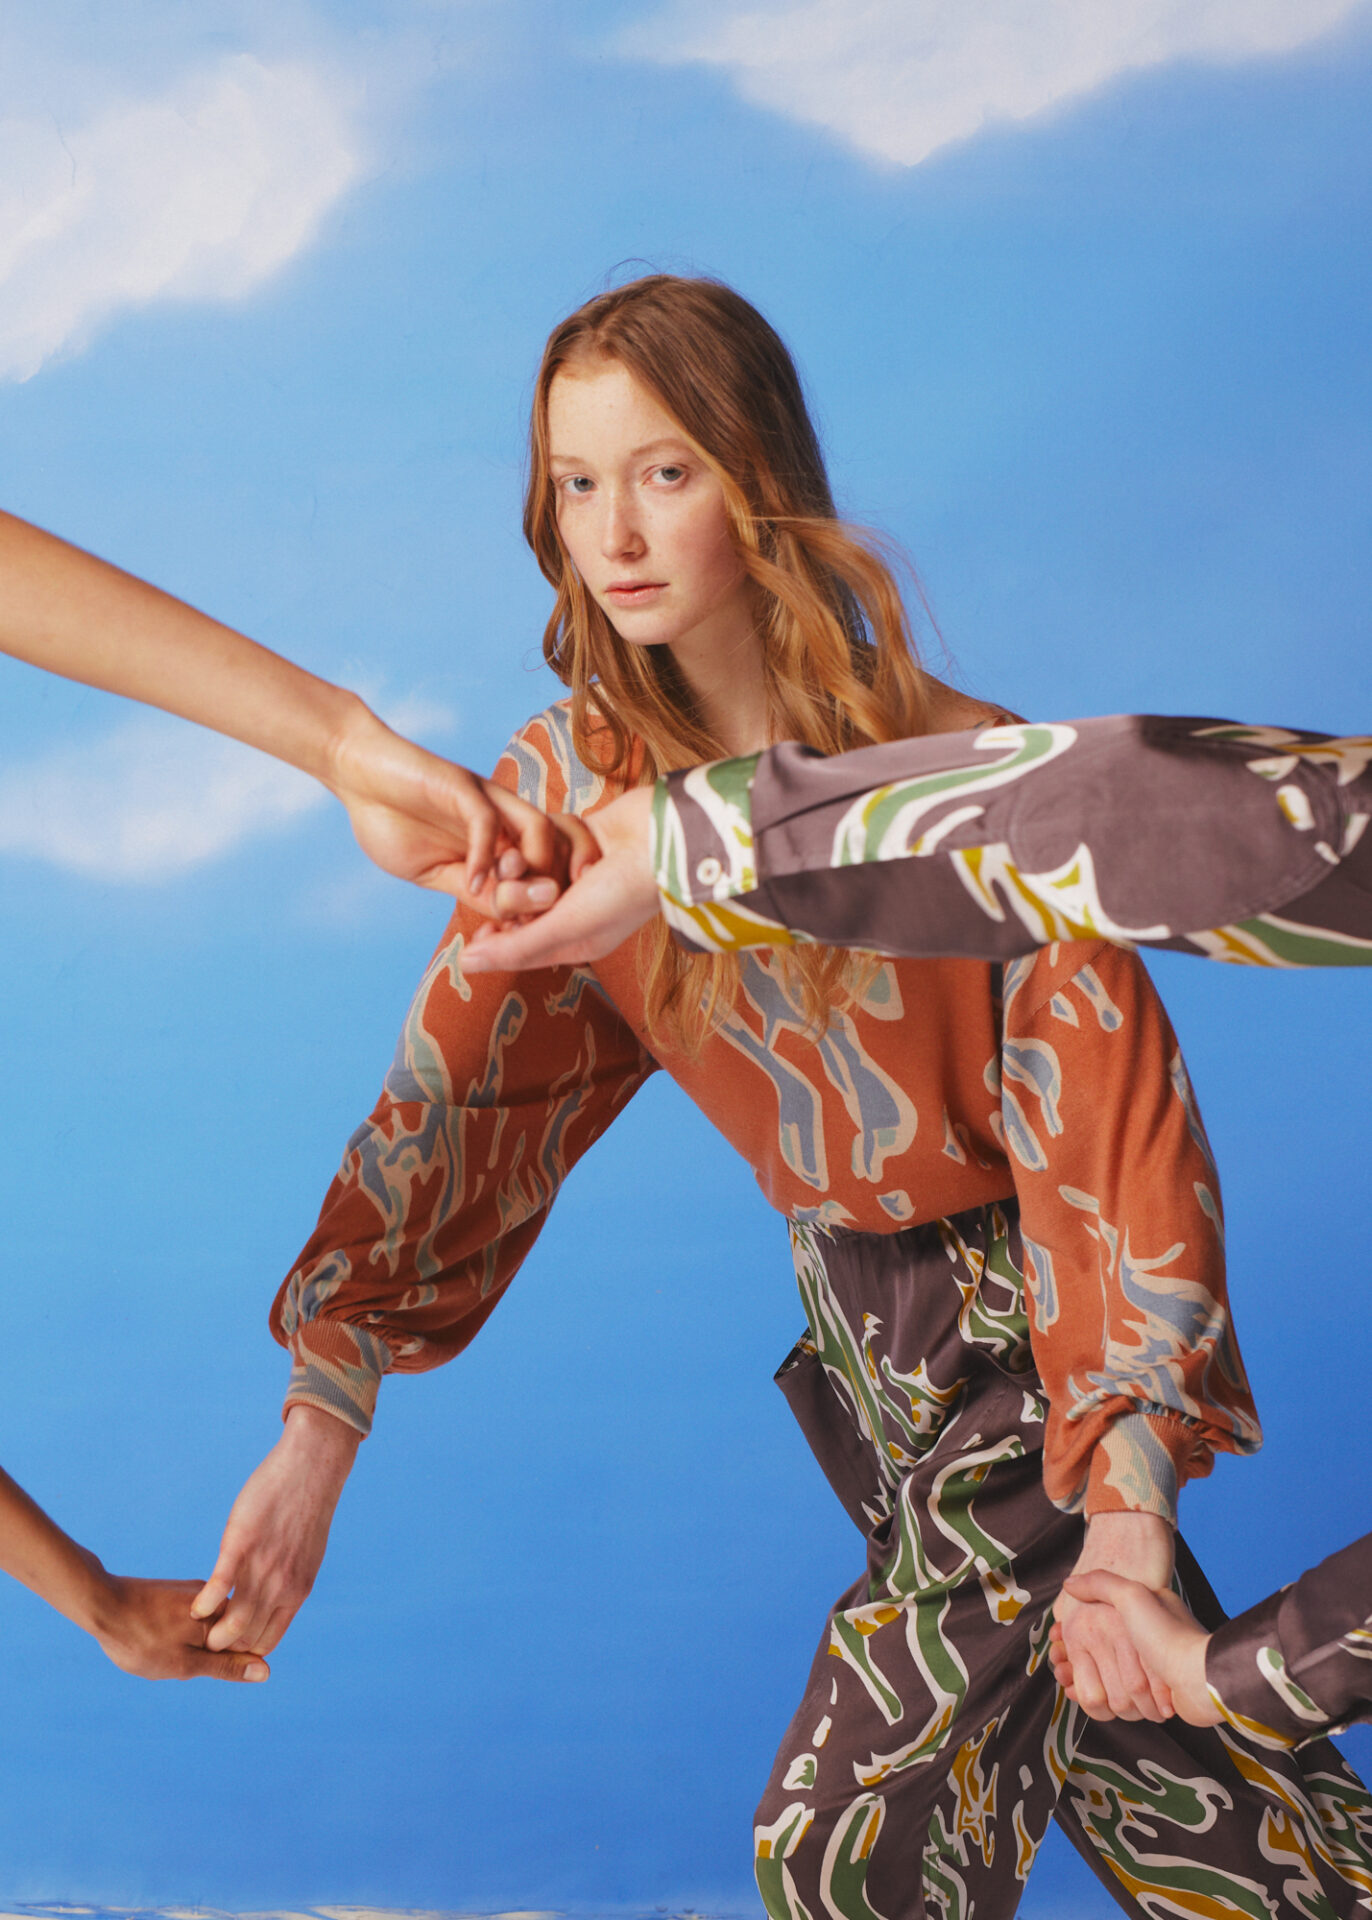 MARIE SCHMIDT – NEW ERA CAMPAIGN FRIENDLY HUNTING